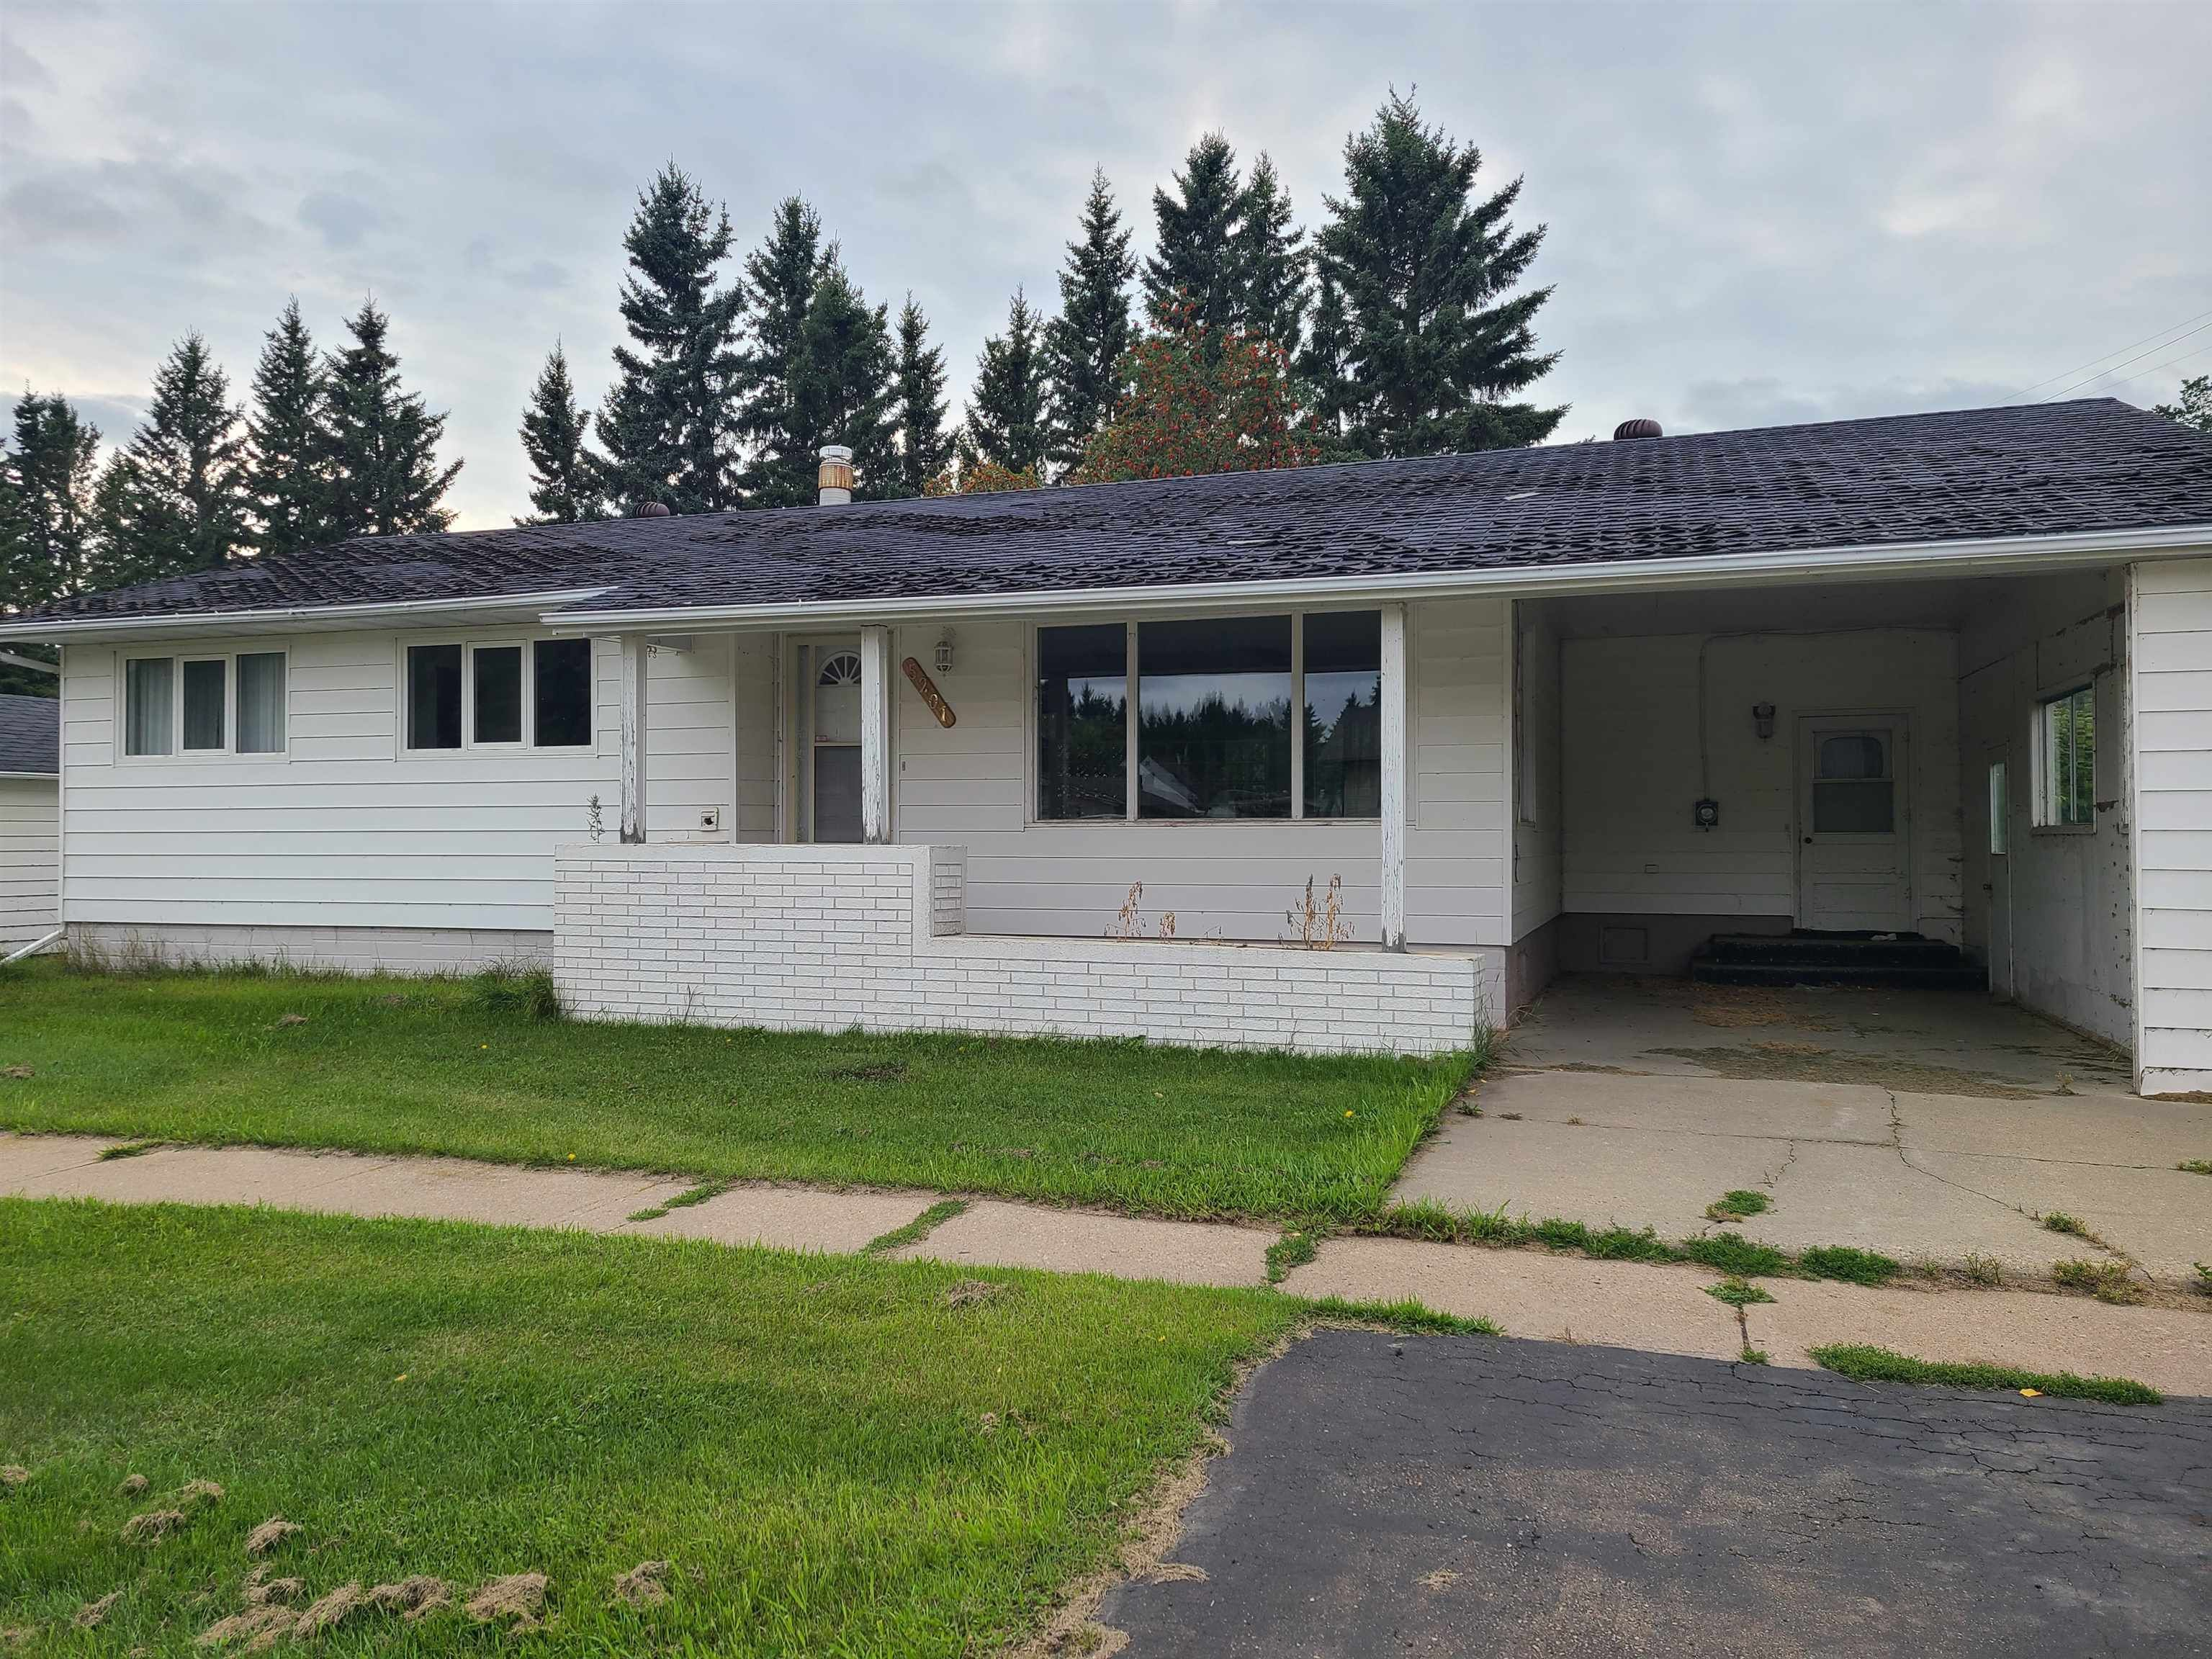 Main Photo: 5201 49A Avenue: Andrew House for sale : MLS®# E4262111